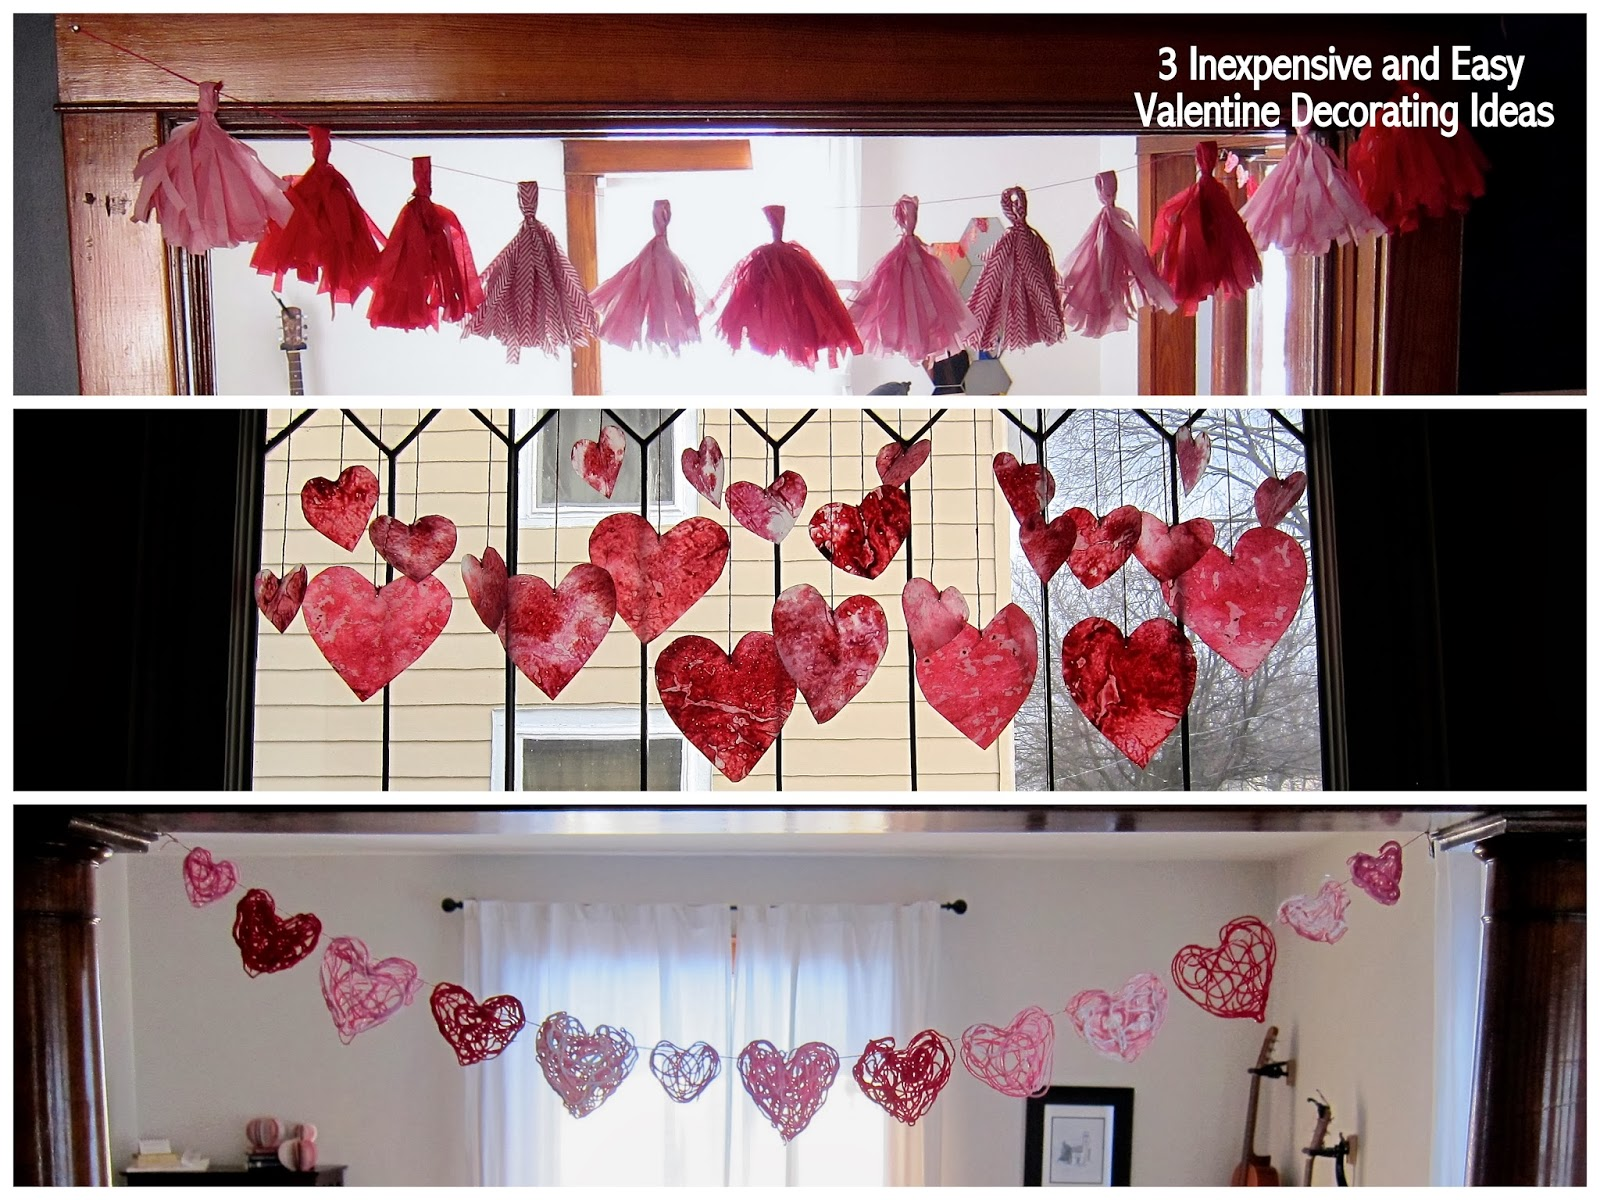 3 Inexpensive and Easy Valentine Decorating Ideas.